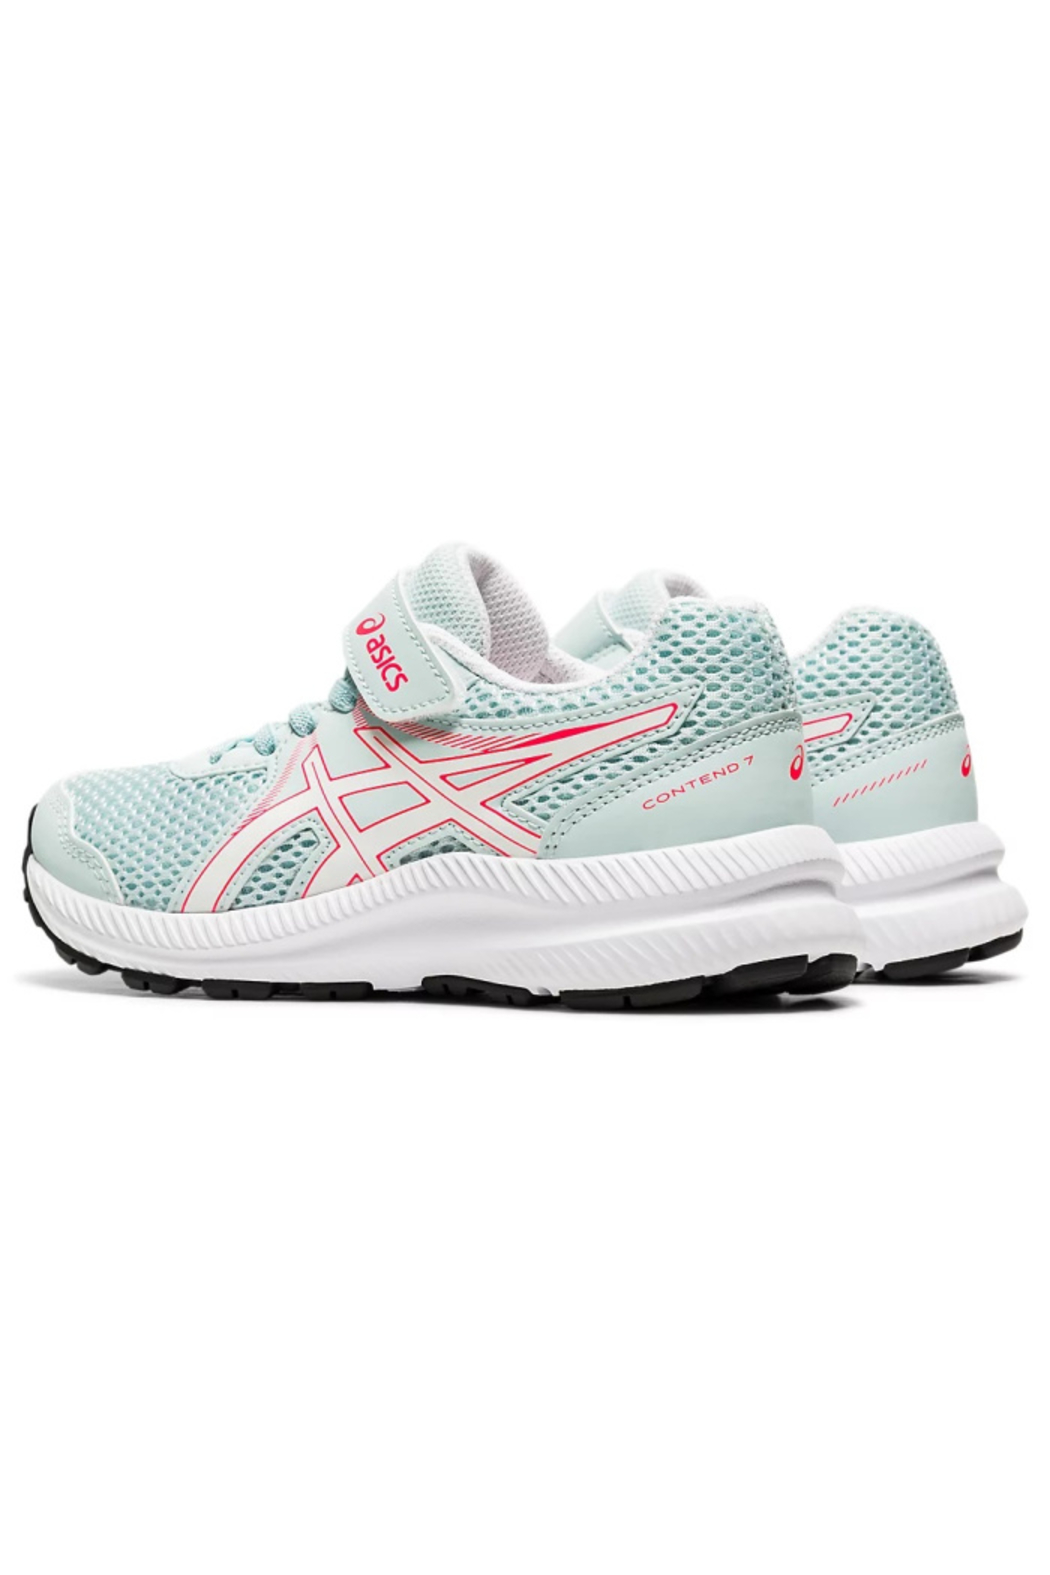 Asics Kids Contend 7 PS - Back Cropped Image